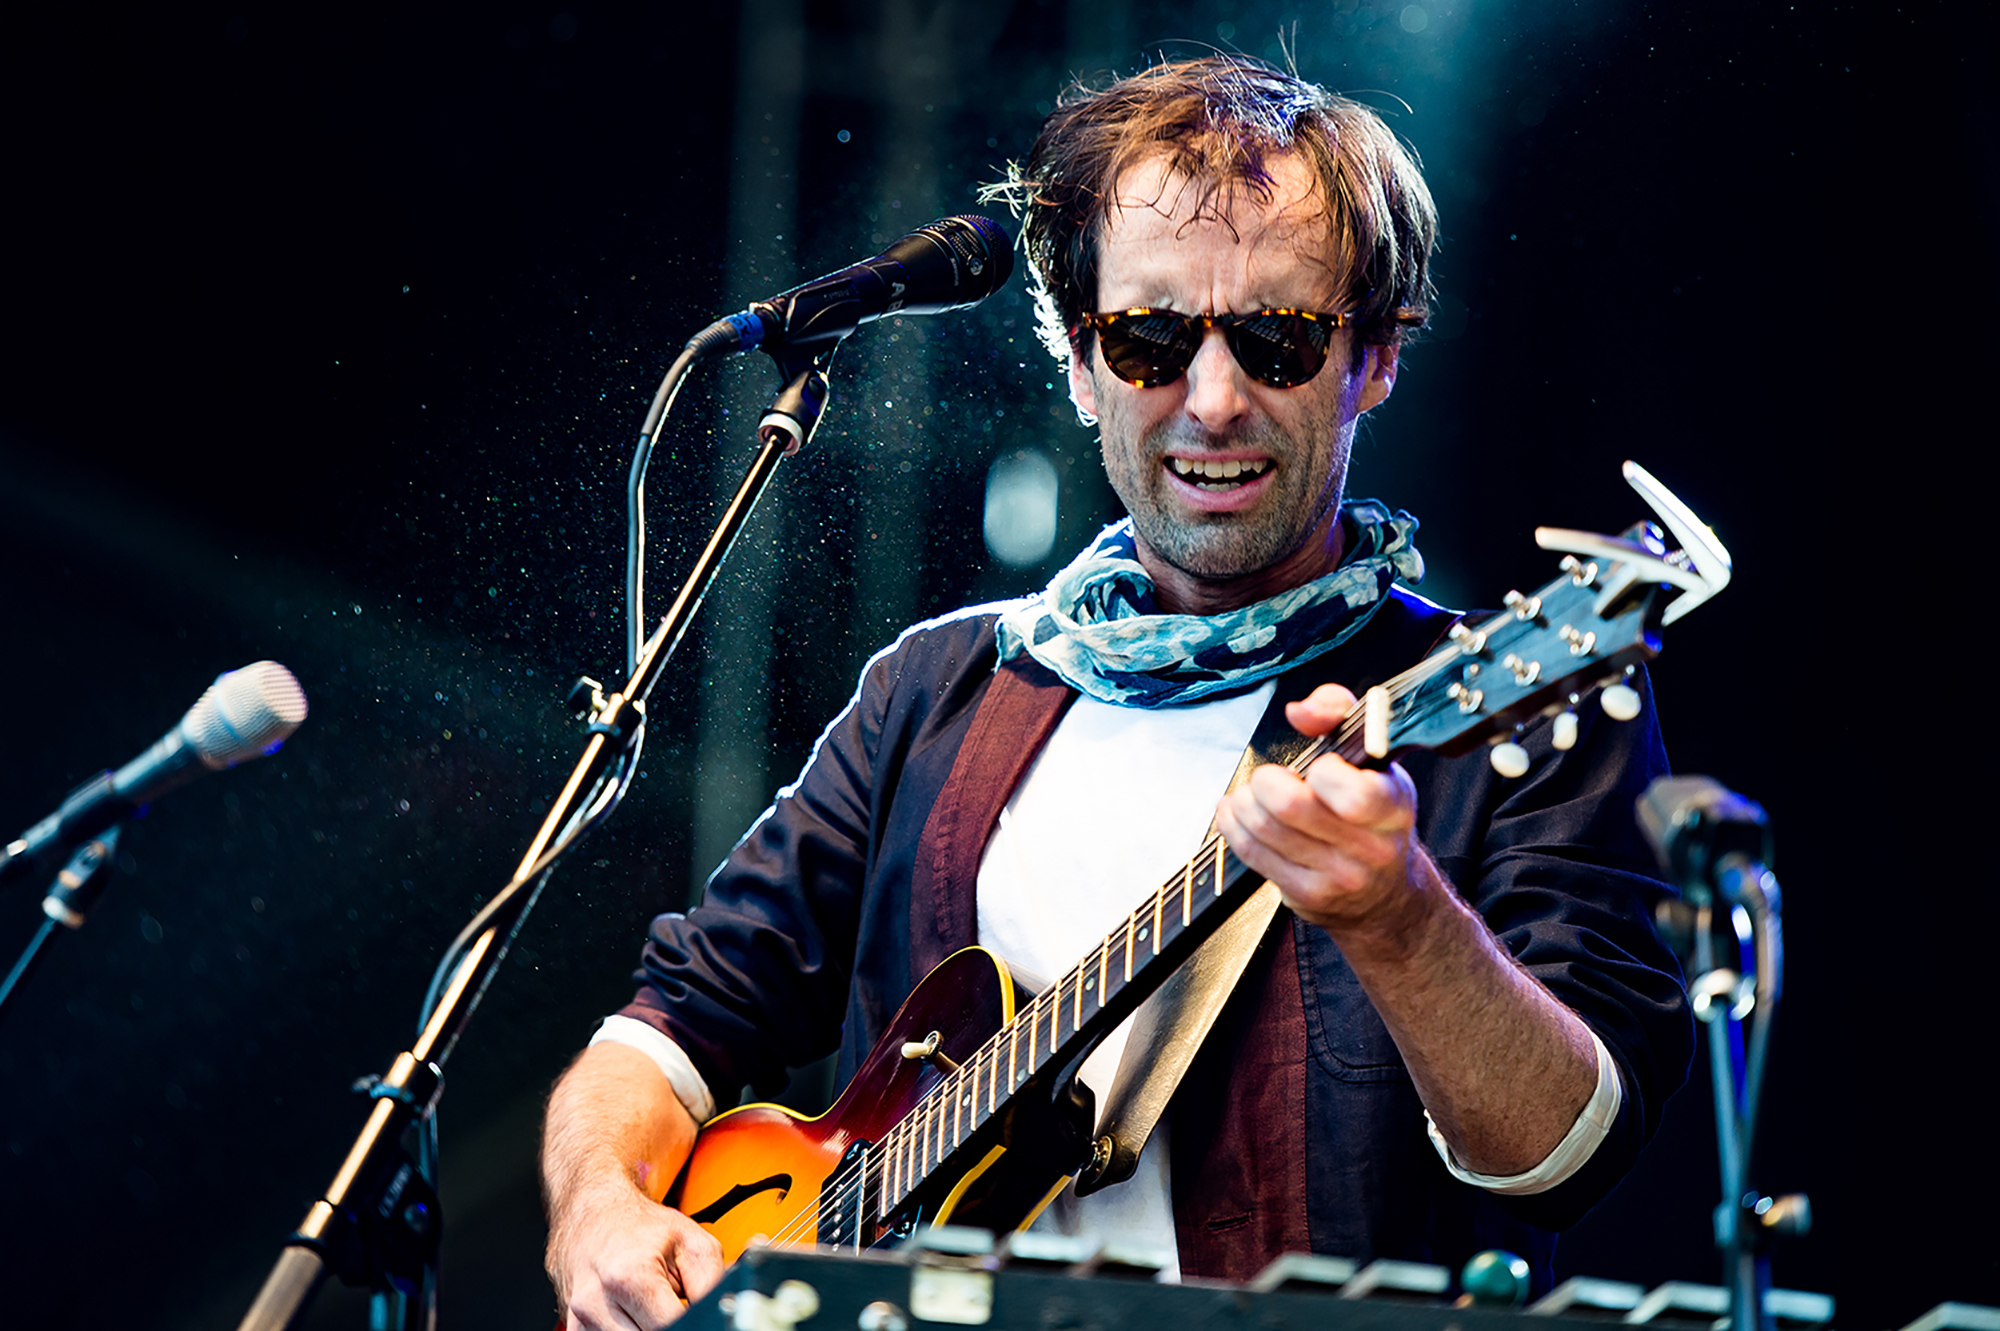 Andrew Bird, Arroyo Seco 2017